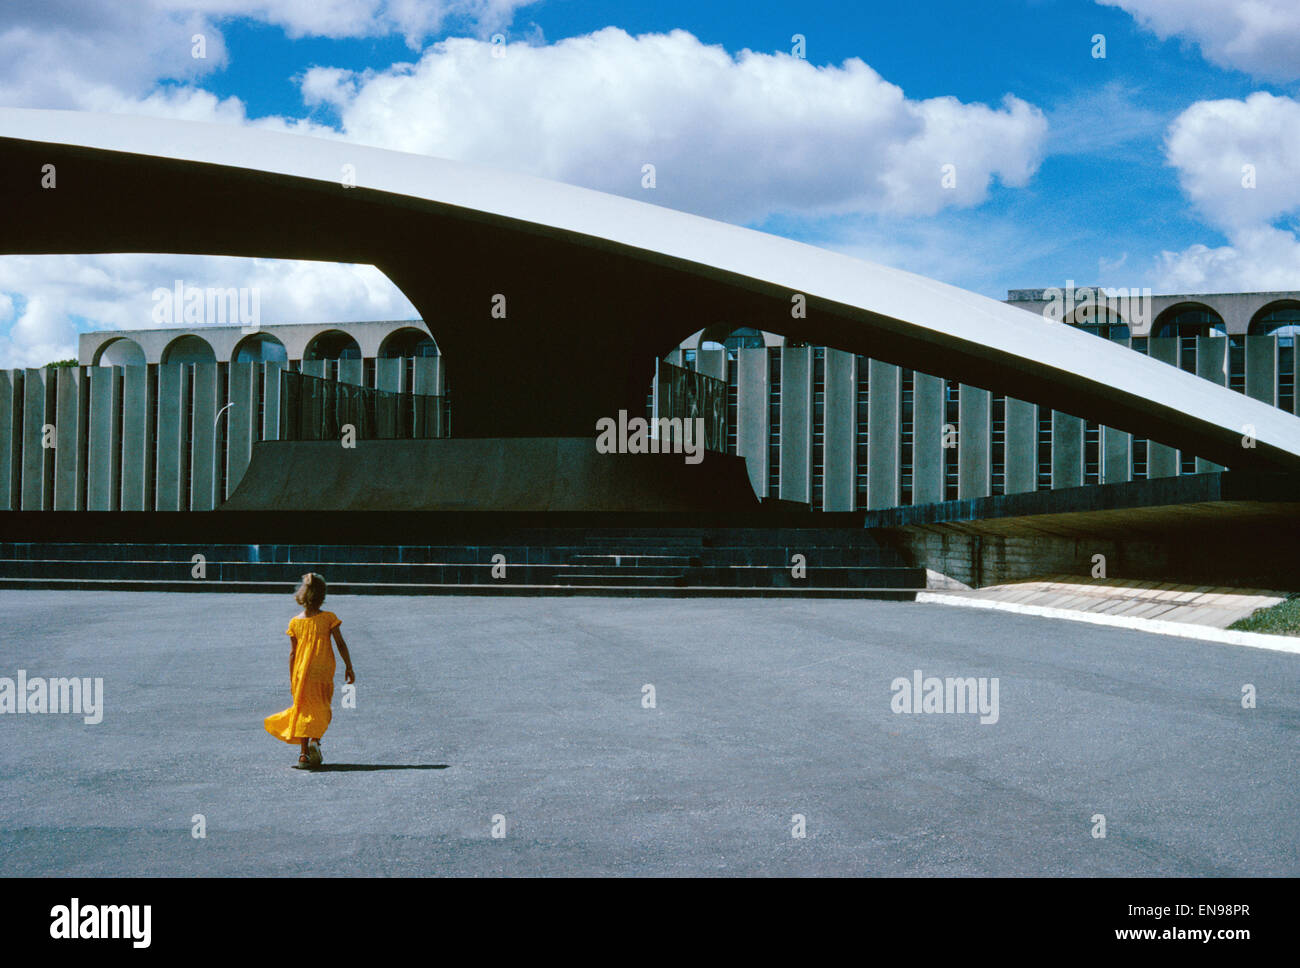 Brazil, Brasilia, the Ministry of Defence with the hilt-shaped entry - Stock Image